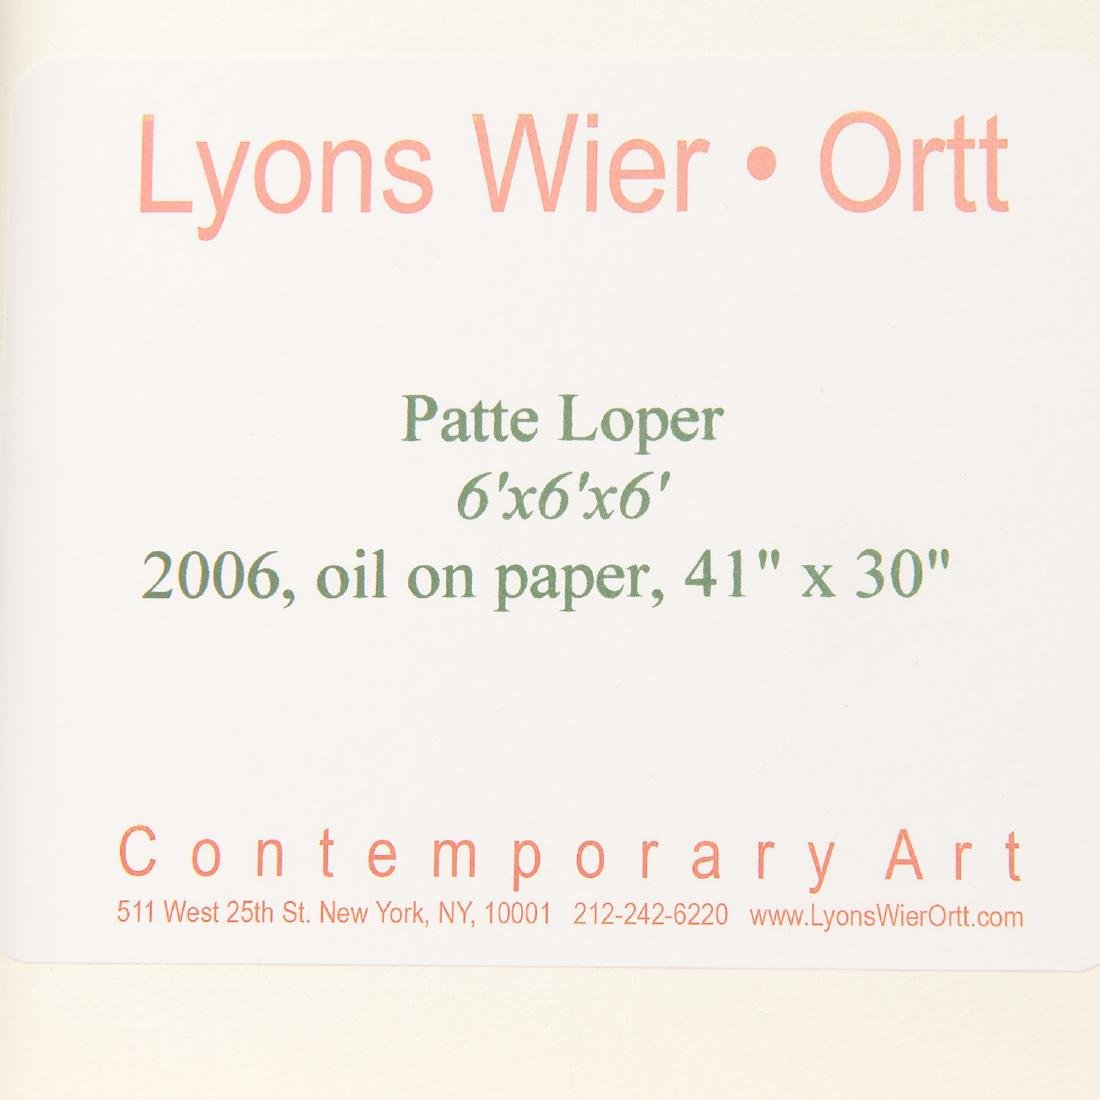 Patte Loper, drawing - 6